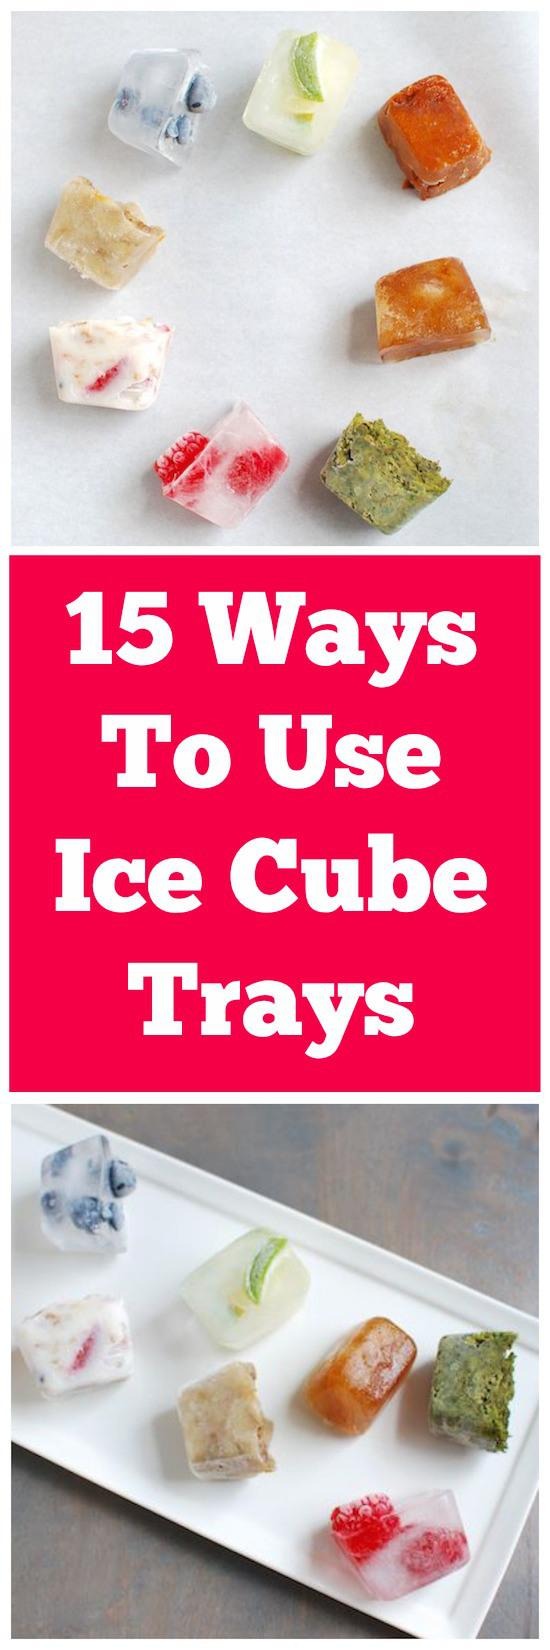 Ice cube trays aren't just for water! Here's 15 Creative Ways To Use Them!